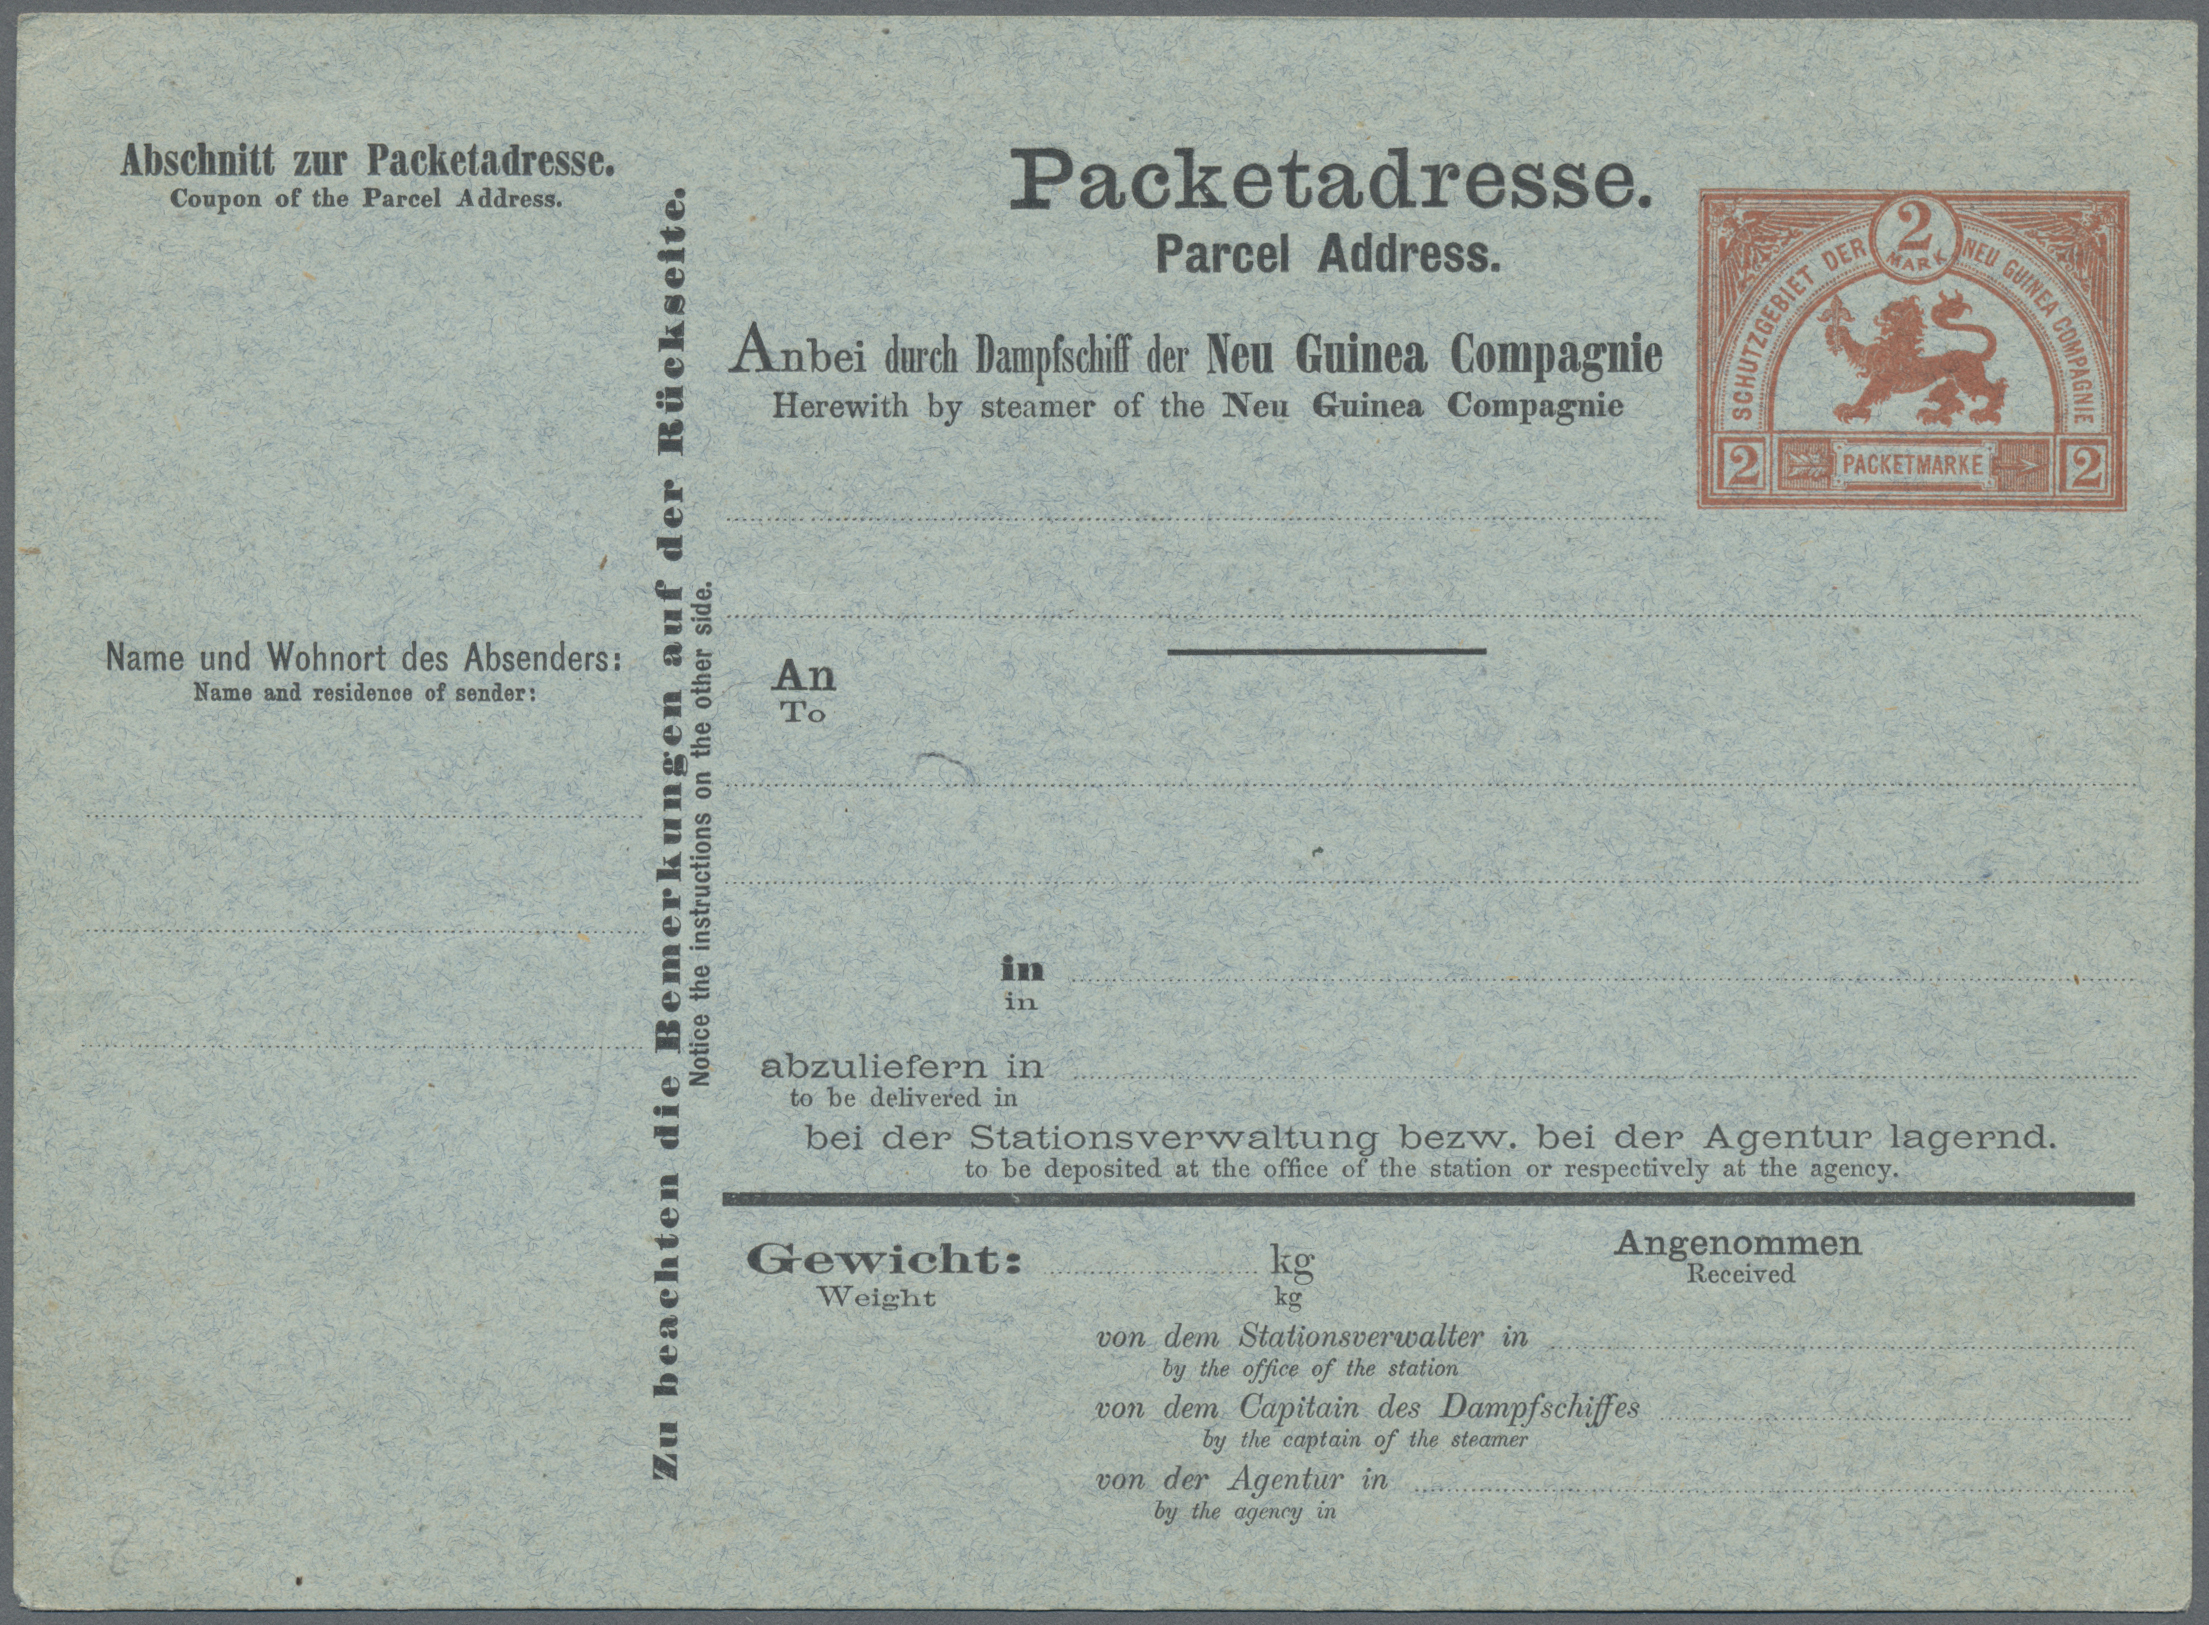 Lot 28796 - deutsch-neuguinea  -  Auktionshaus Christoph Gärtner GmbH & Co. KG Sale #46 Gollcetions Germany - including the suplement